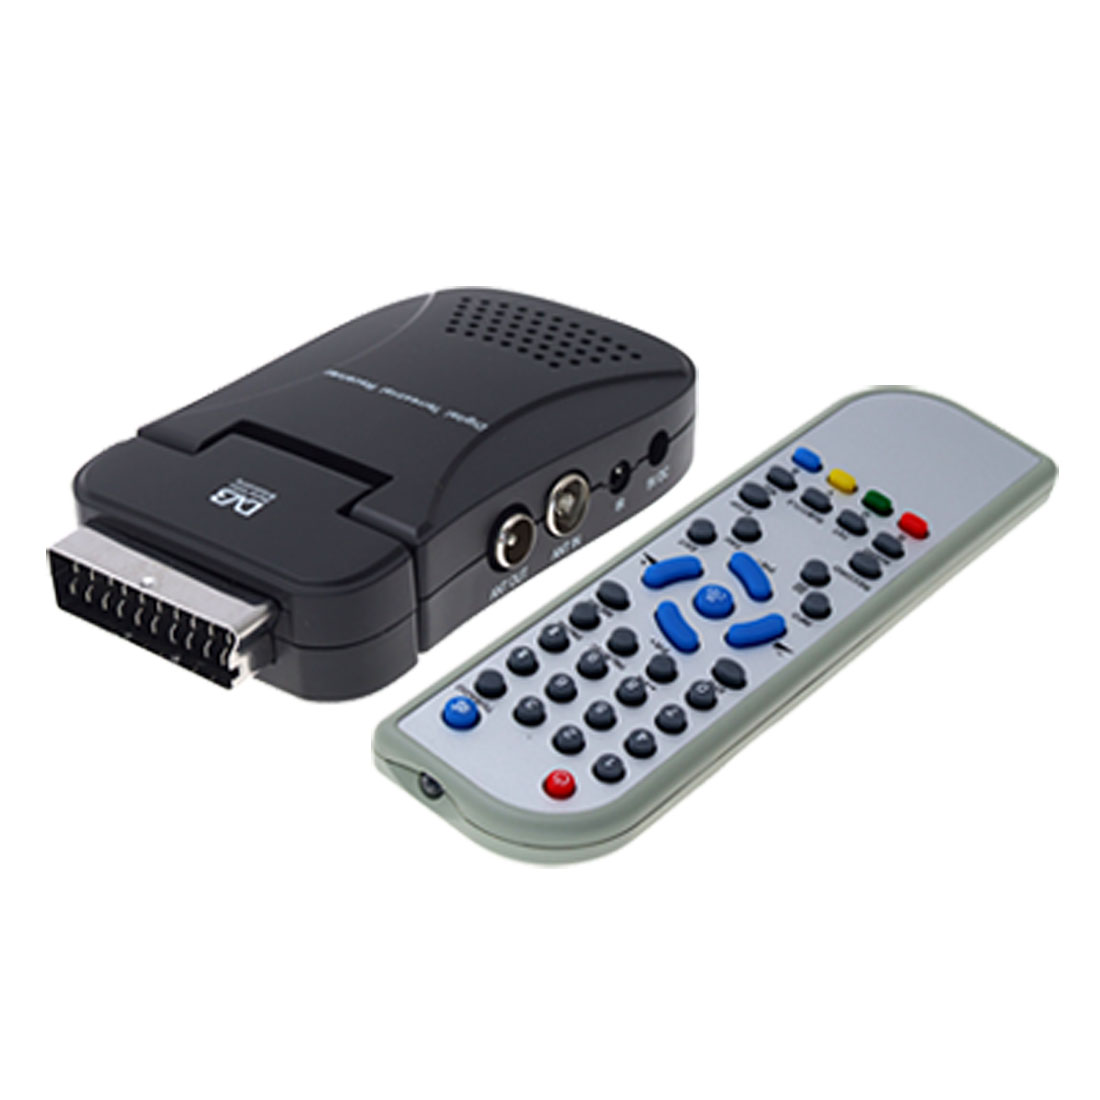 EU Plug AC 100-240V DVB-T Receiver Scart Interface PVR Remote Controller